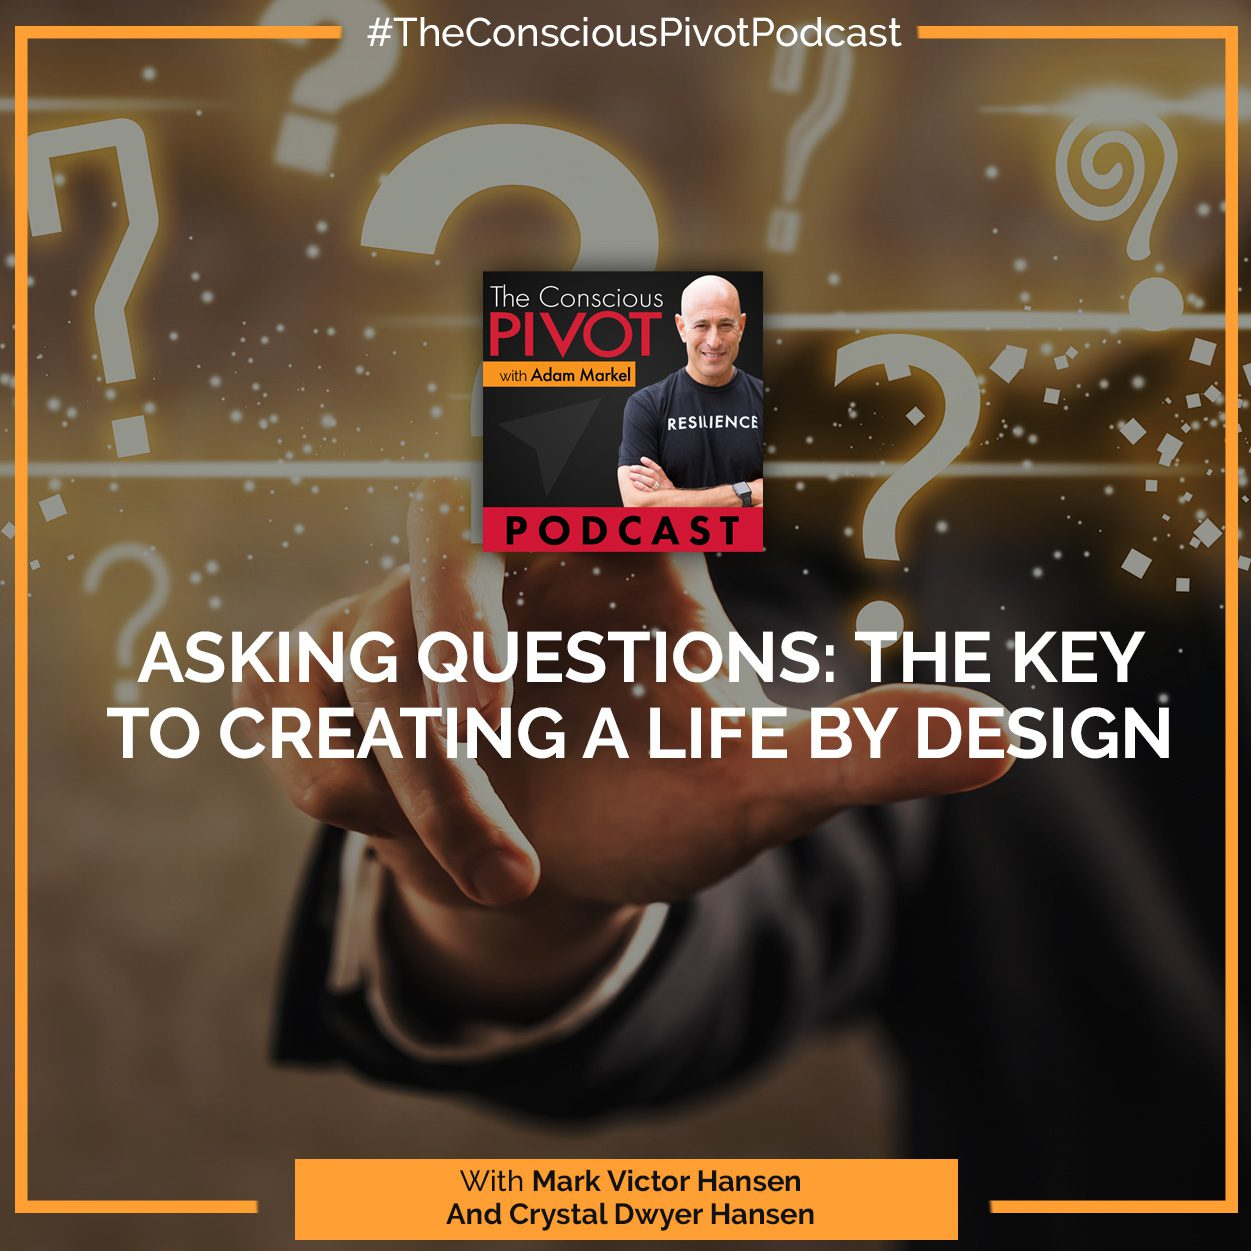 Asking Questions: The Key To Creating A Life By Design With Mark Victor Hansen And Crystal Dwyer Hansen